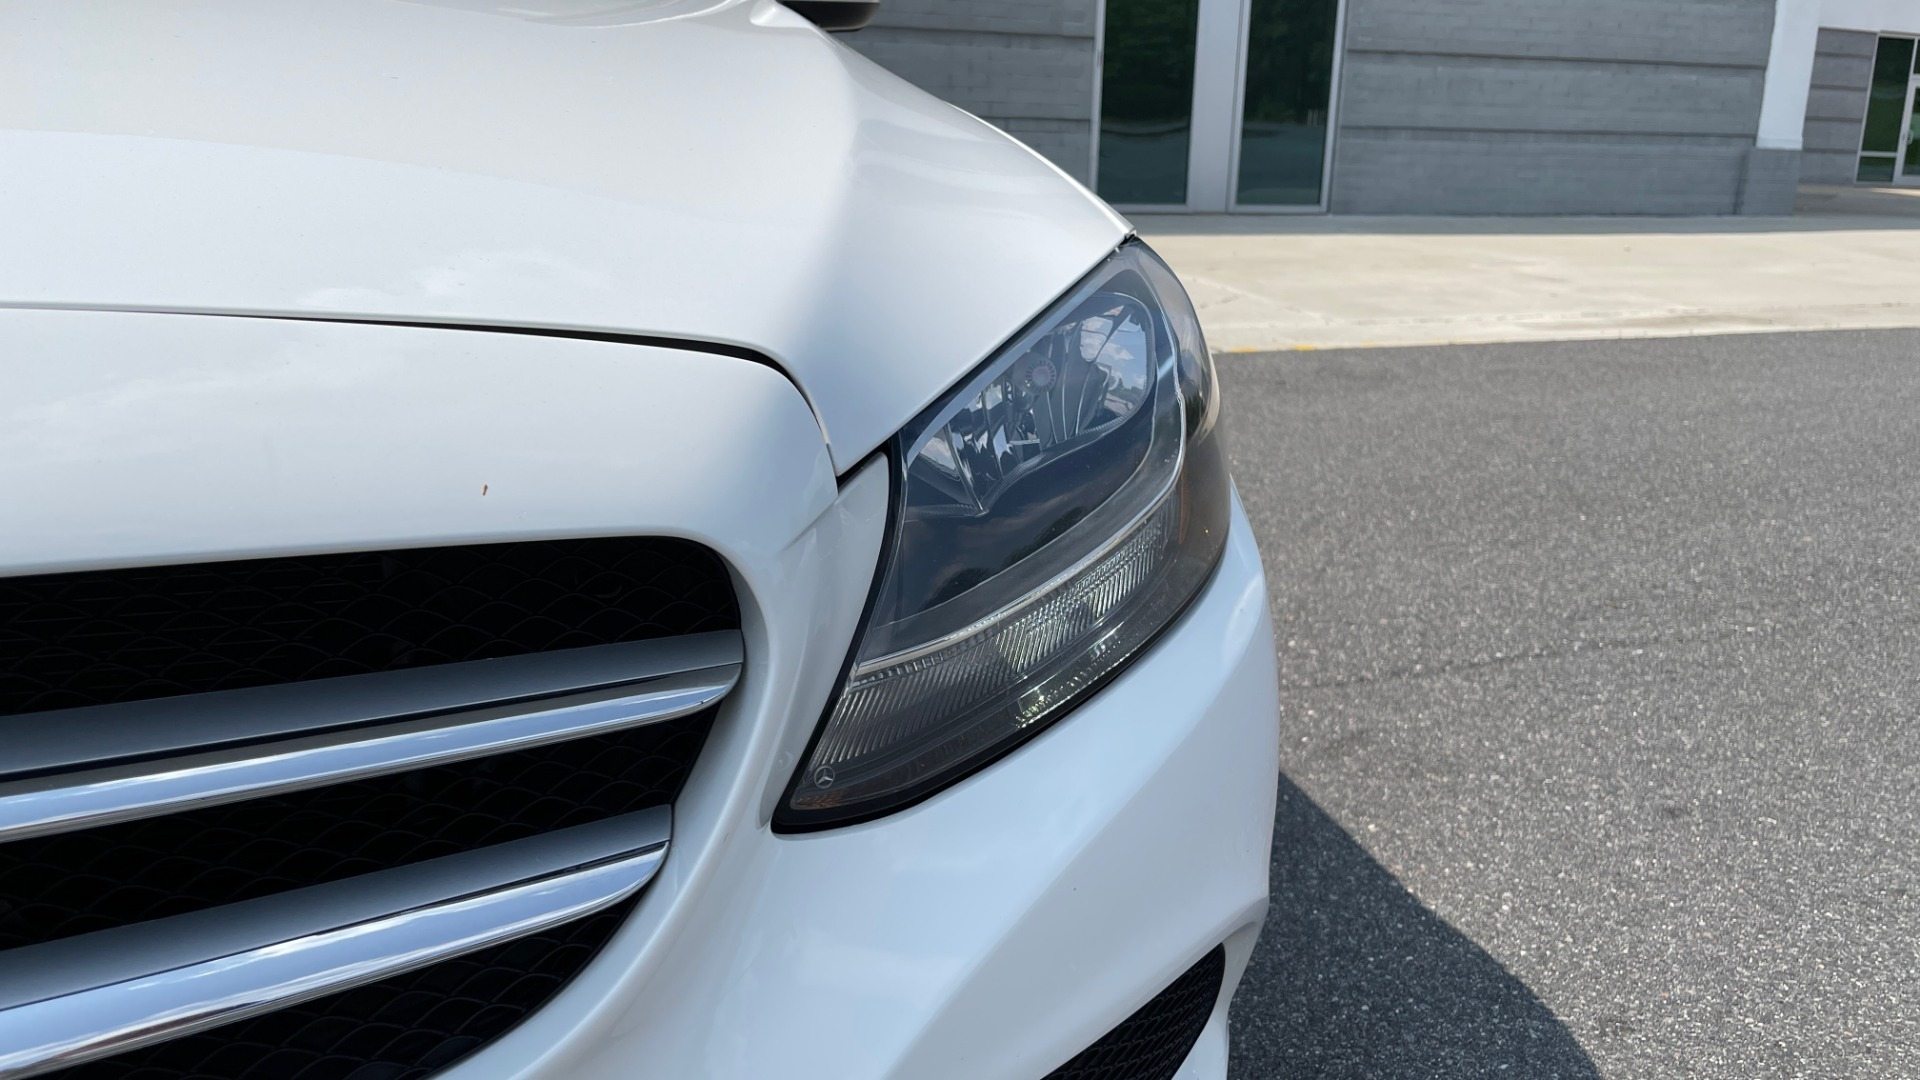 Used 2018 Mercedes-Benz C-CLASS C 300 / 2.0L / RWD / SUNROOF / APPLE~ANDROID / REARVIEW for sale $29,995 at Formula Imports in Charlotte NC 28227 13